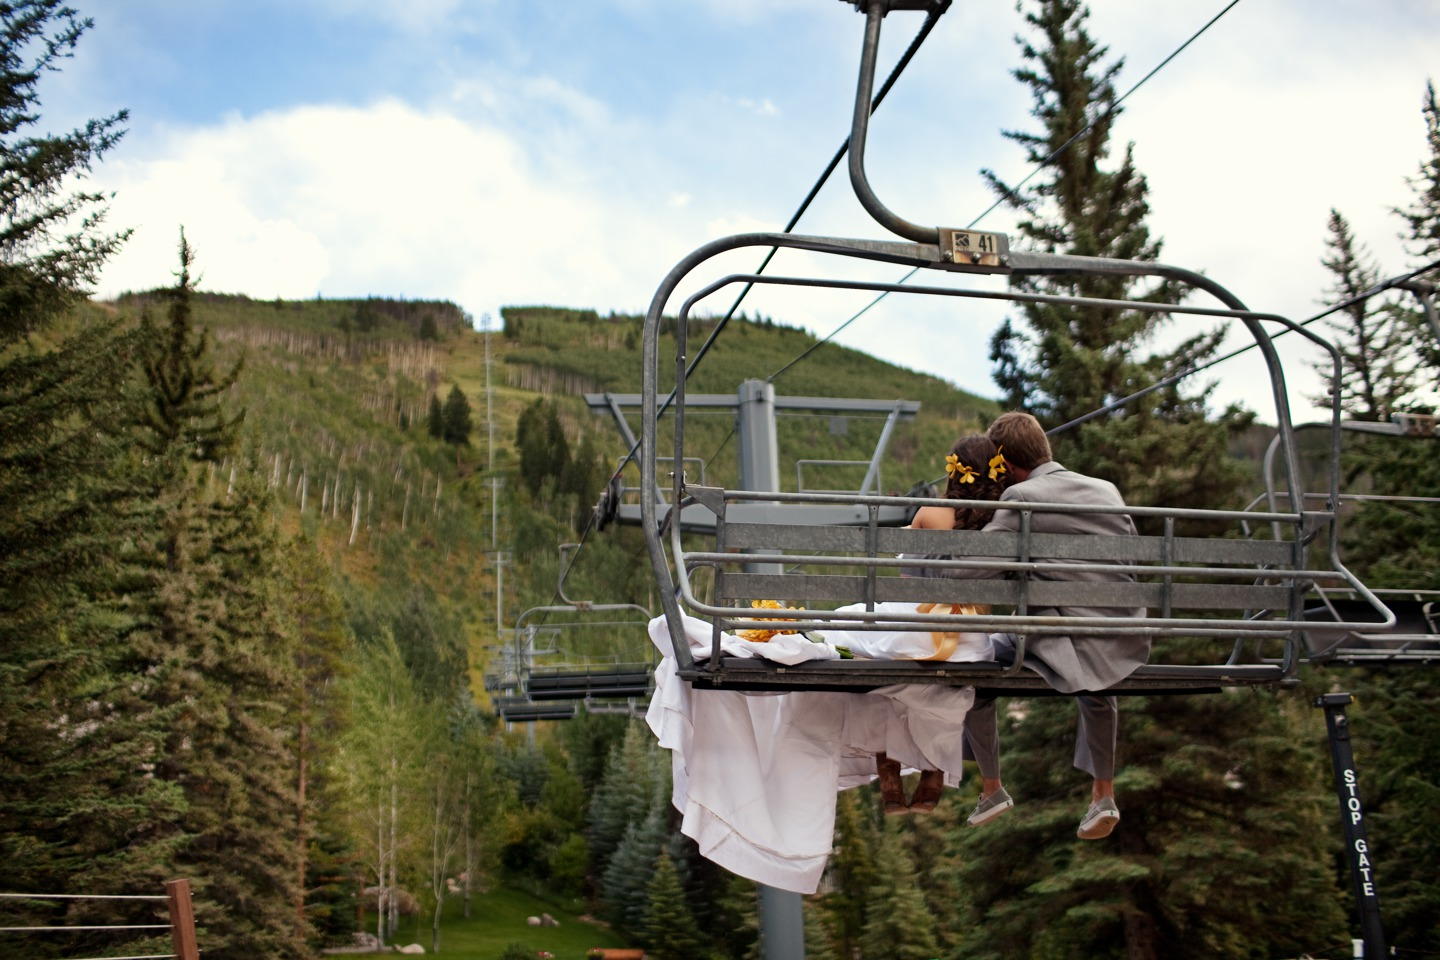 Bride and Groom on Chairlift